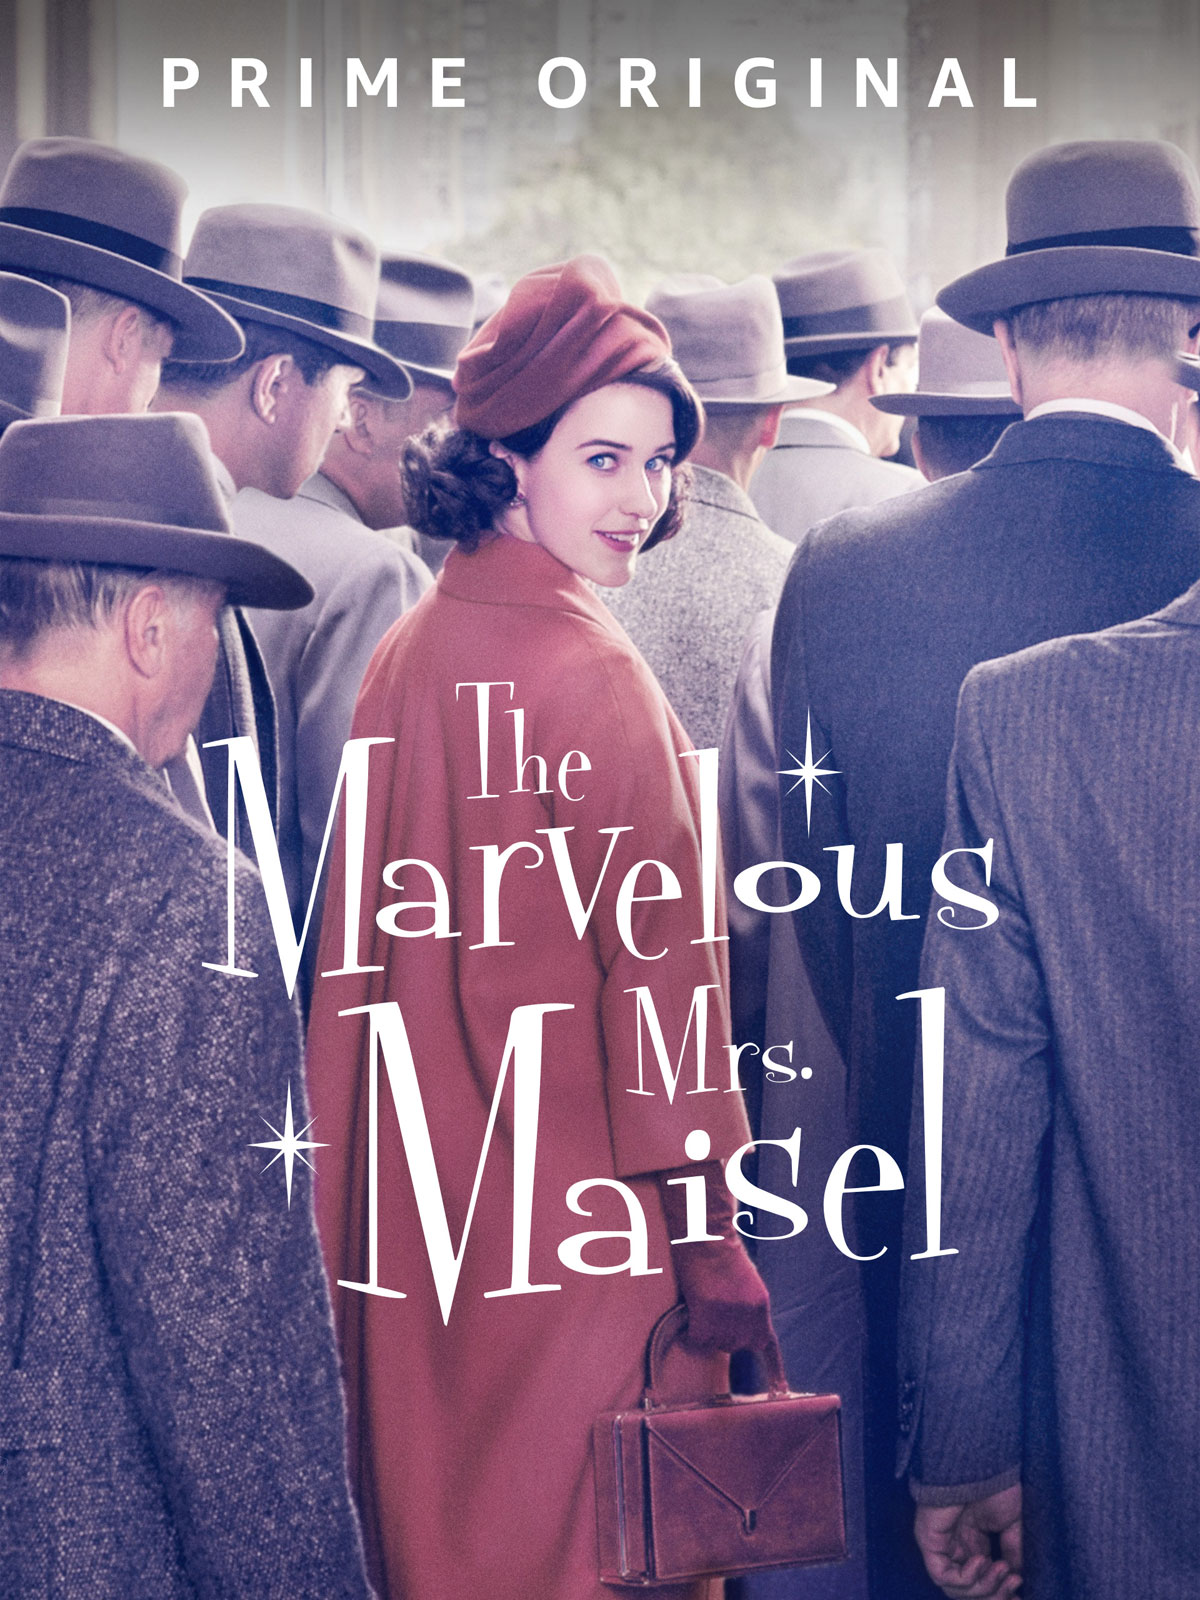 The Marvelous Mrs. Maisel - Serie 2017 - SensaCine.com